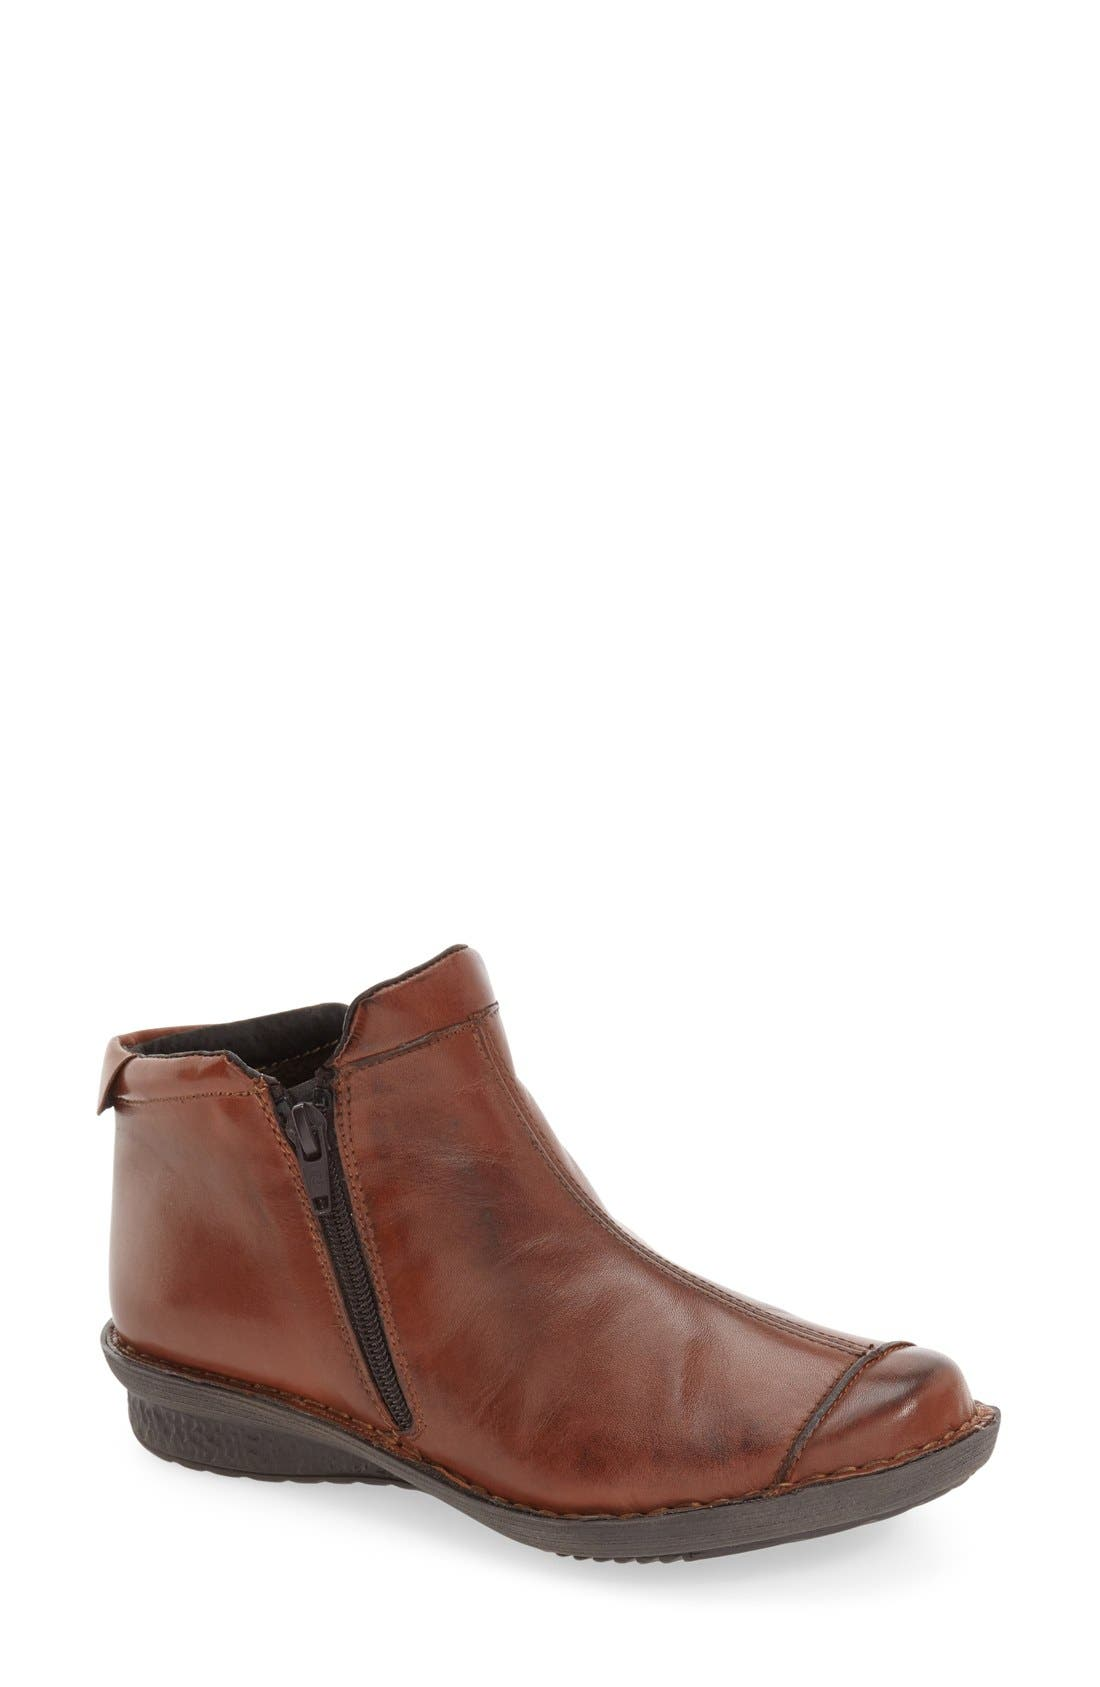 'Euro' Zip Bootie,                         Main,                         color, Luggage Leather